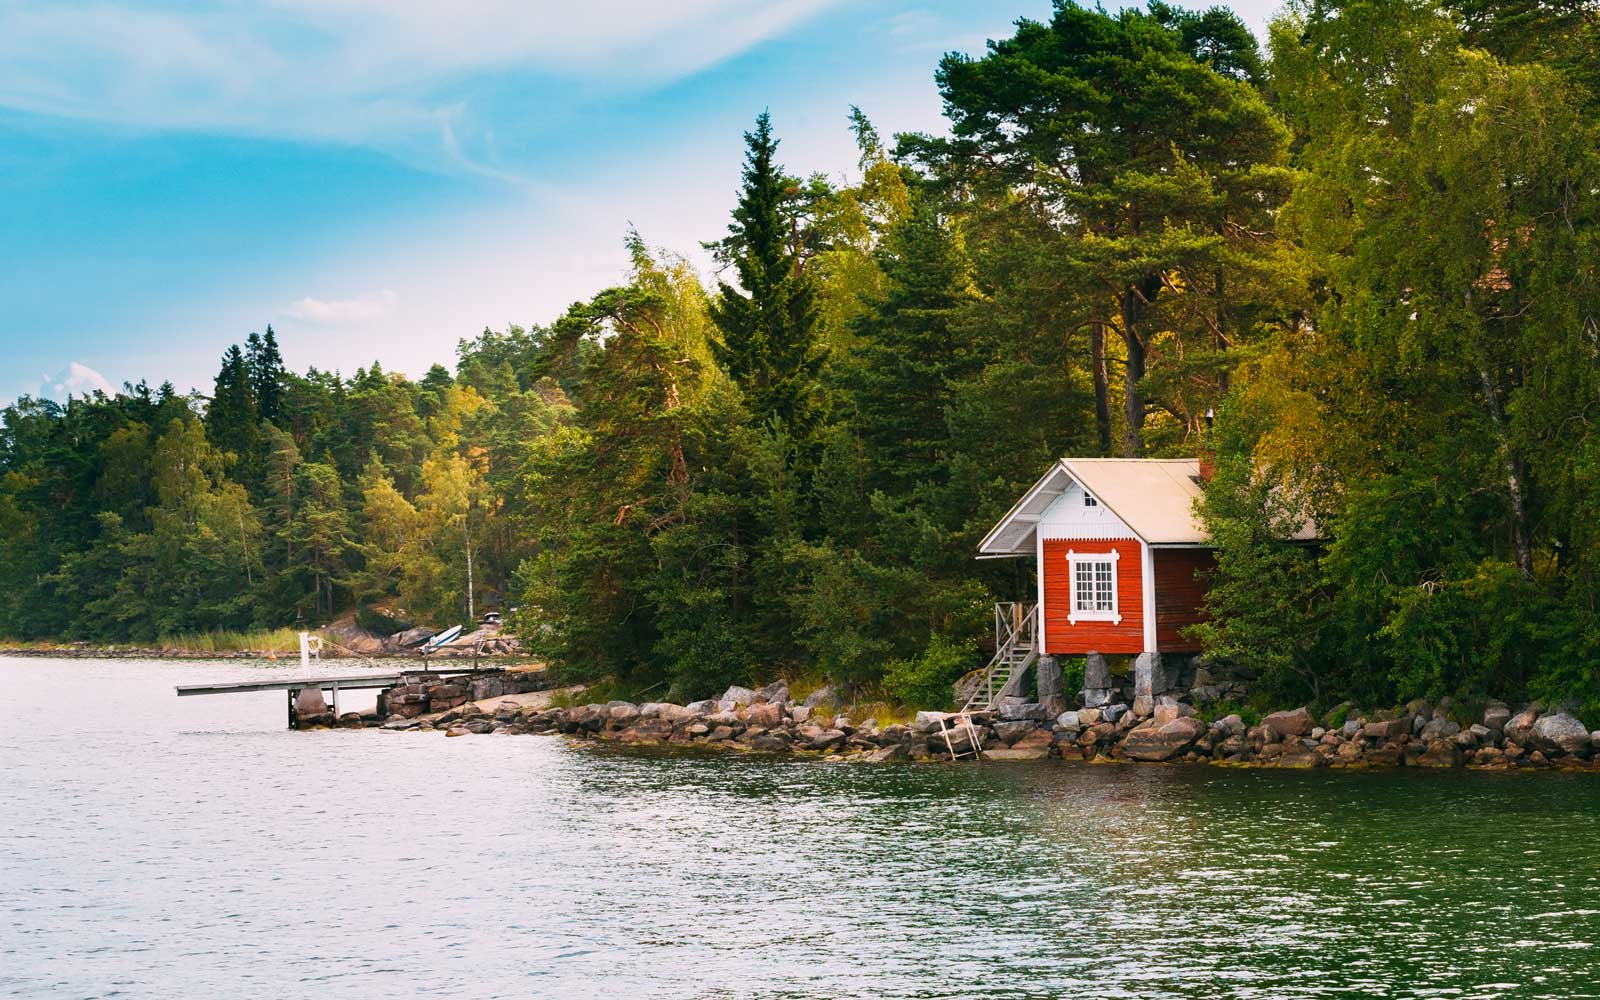 There Is an Island Off the Coast of Finland Where Only Women Can Vacation